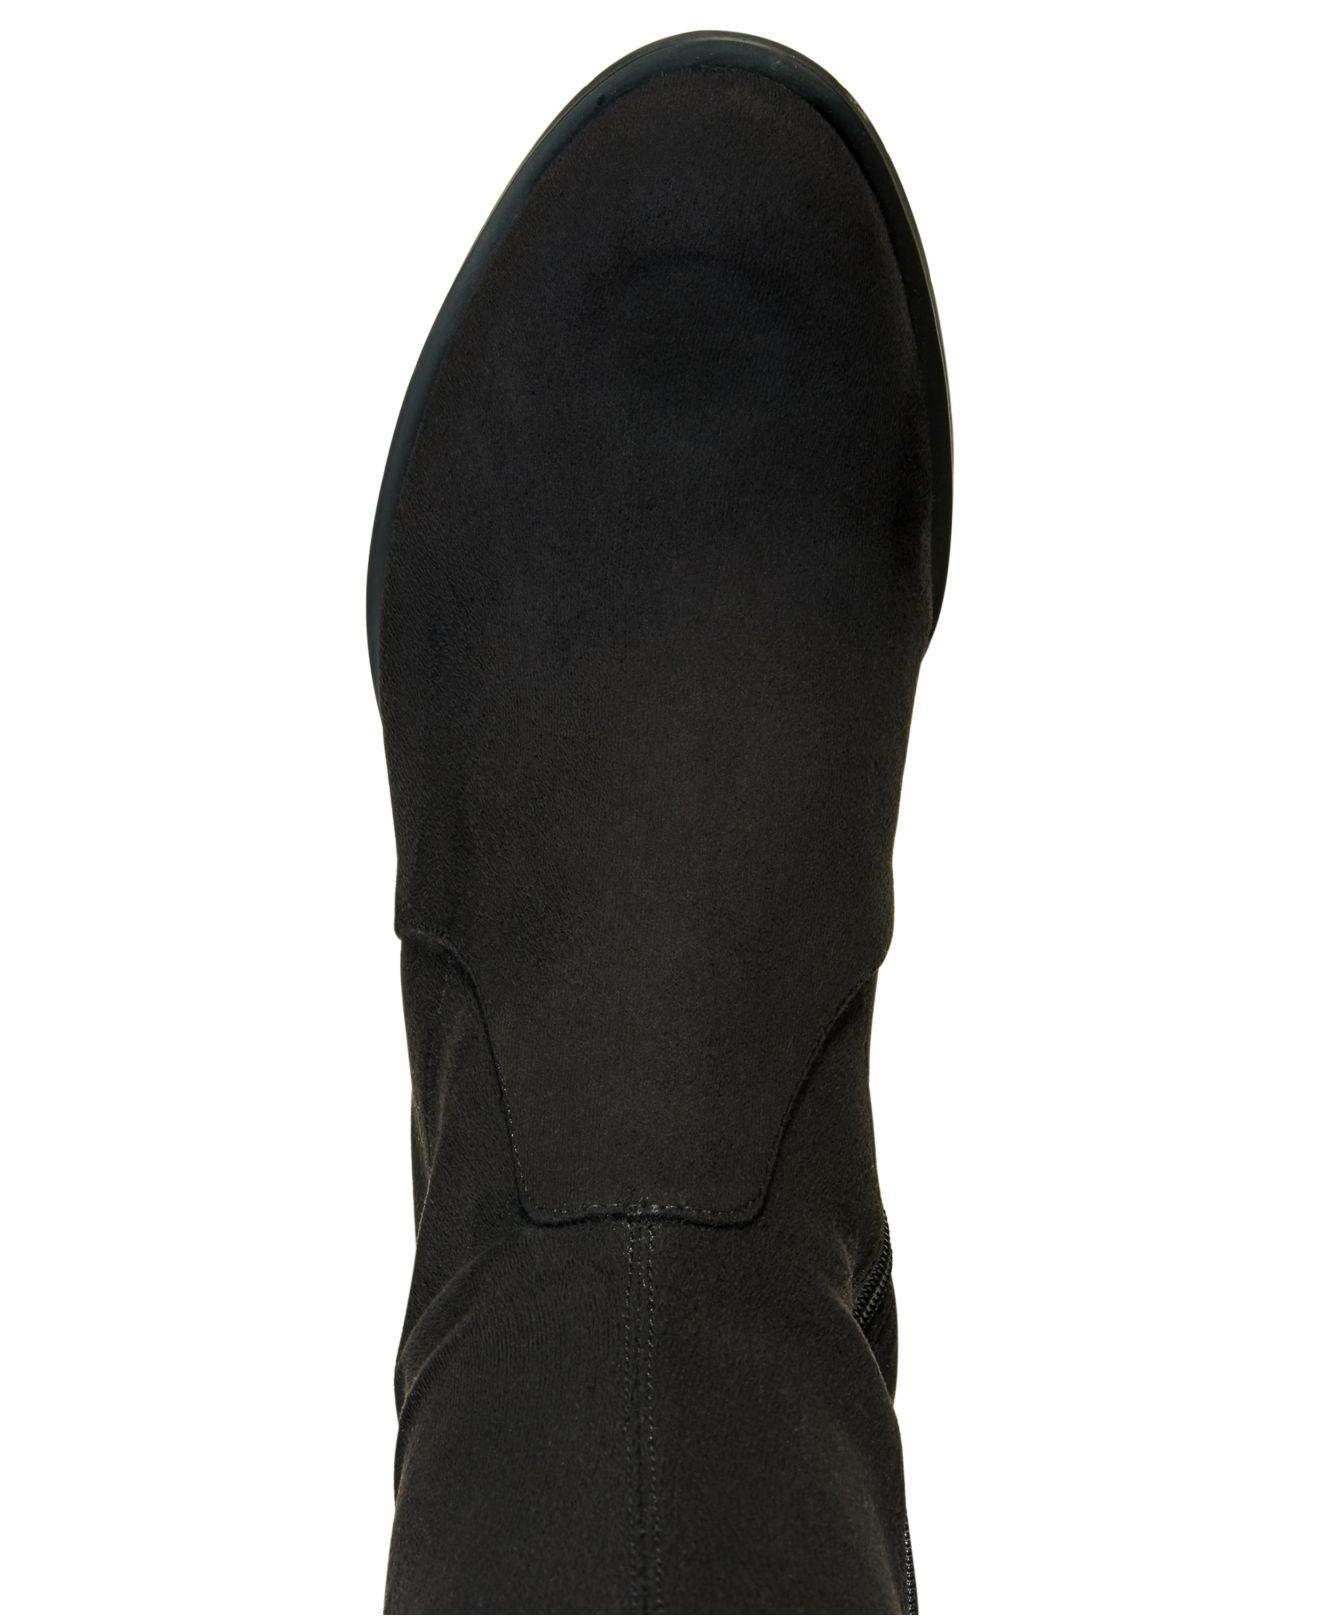 Kenneth Kenneth Kenneth Cole Damenschuhe 7 adelynn Closed Toe Knee High Fashion Stiefel 54f0eb